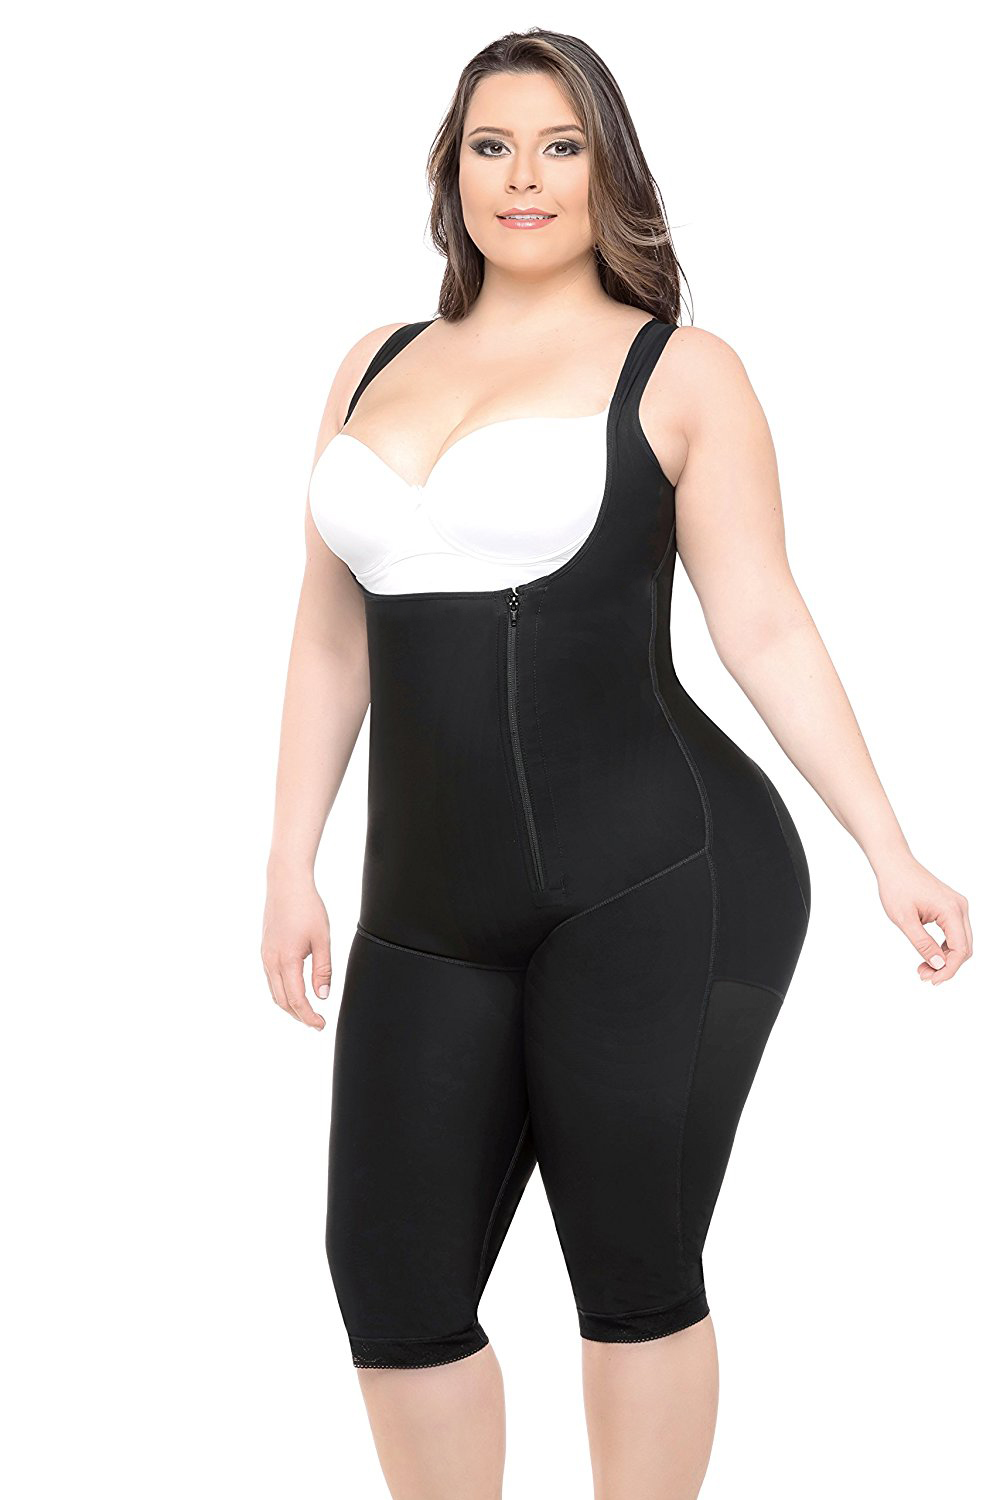 Women Bodysuit 6XL Plus Size Corset Hot Waist Trainer Slimming Body Shaper Feminino Bodysuits Over Bust Push Up Firm Shapewear